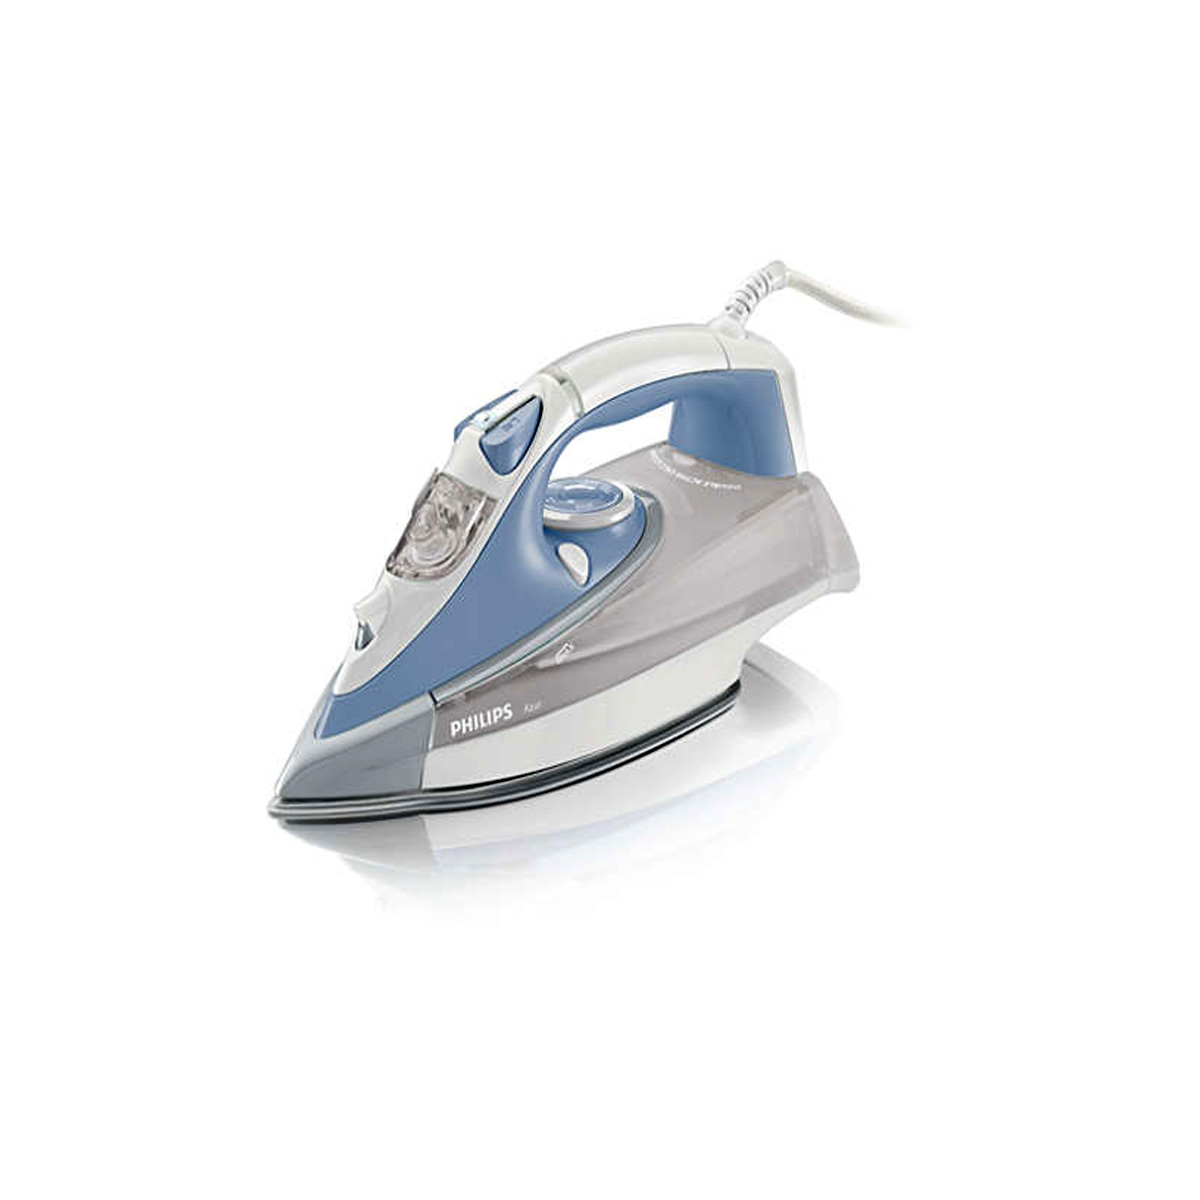 Philips GC4856 Azur Steam Iron